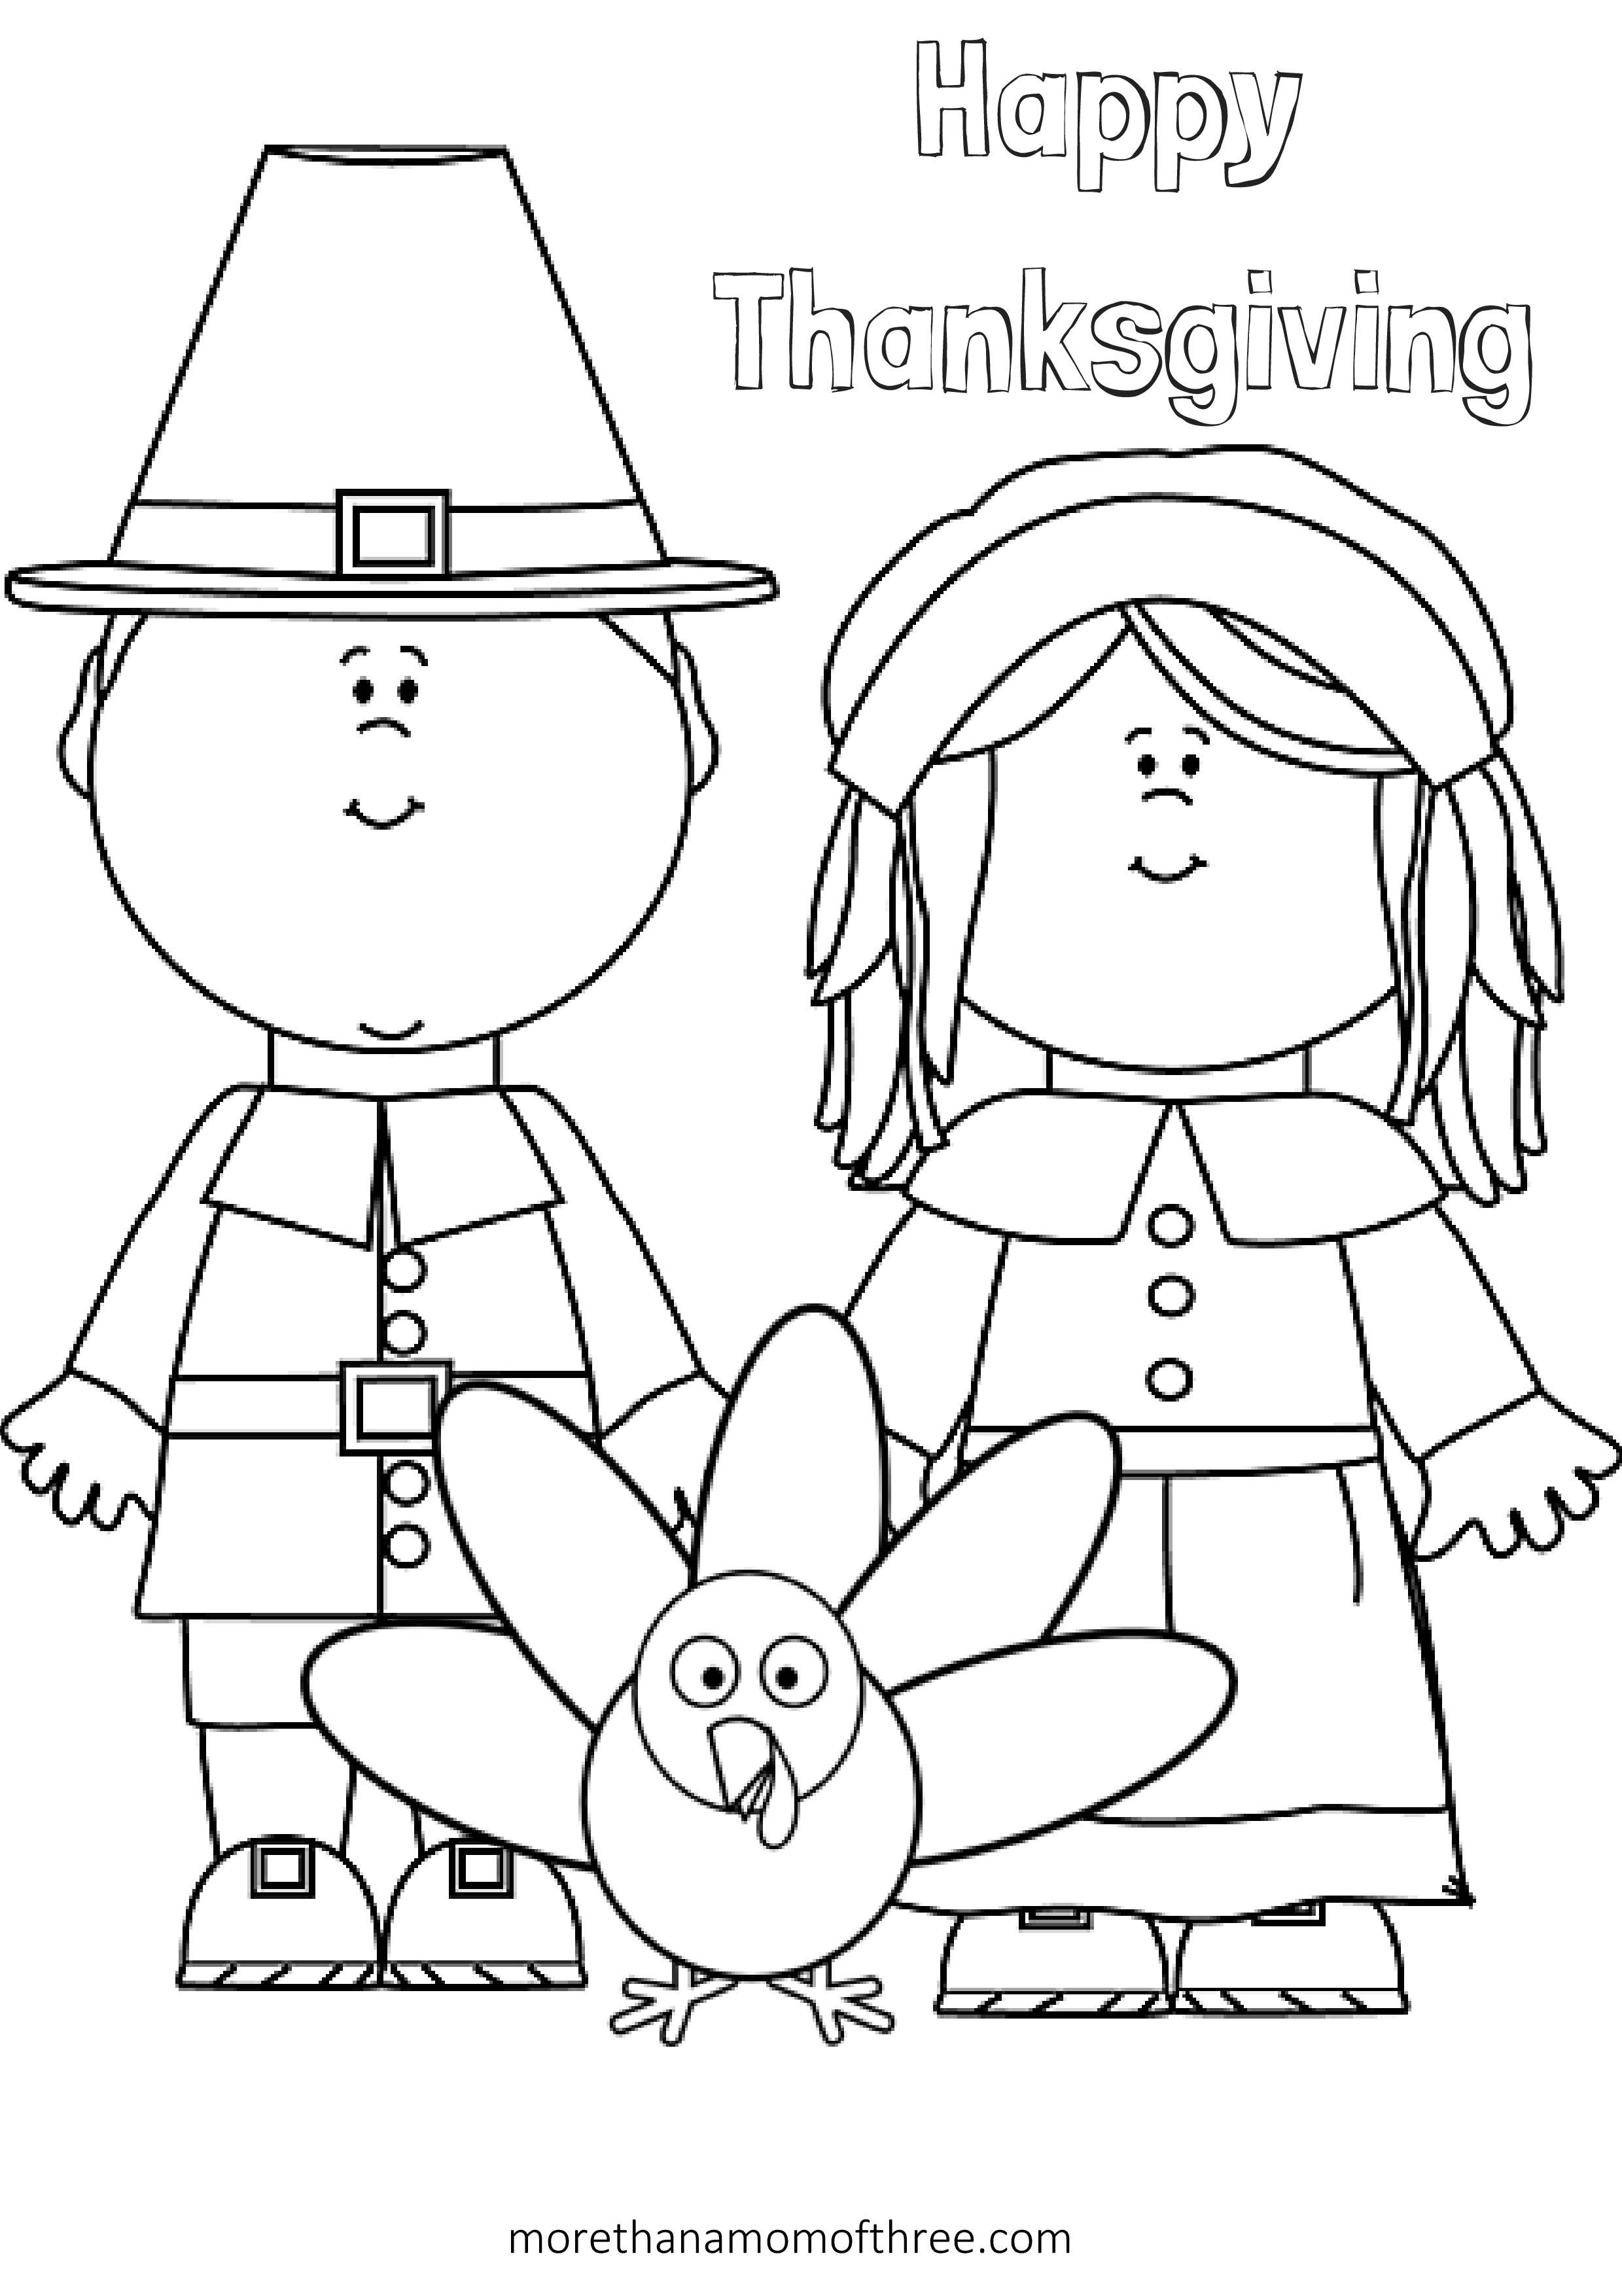 Free Thanksgiving Coloring Pages